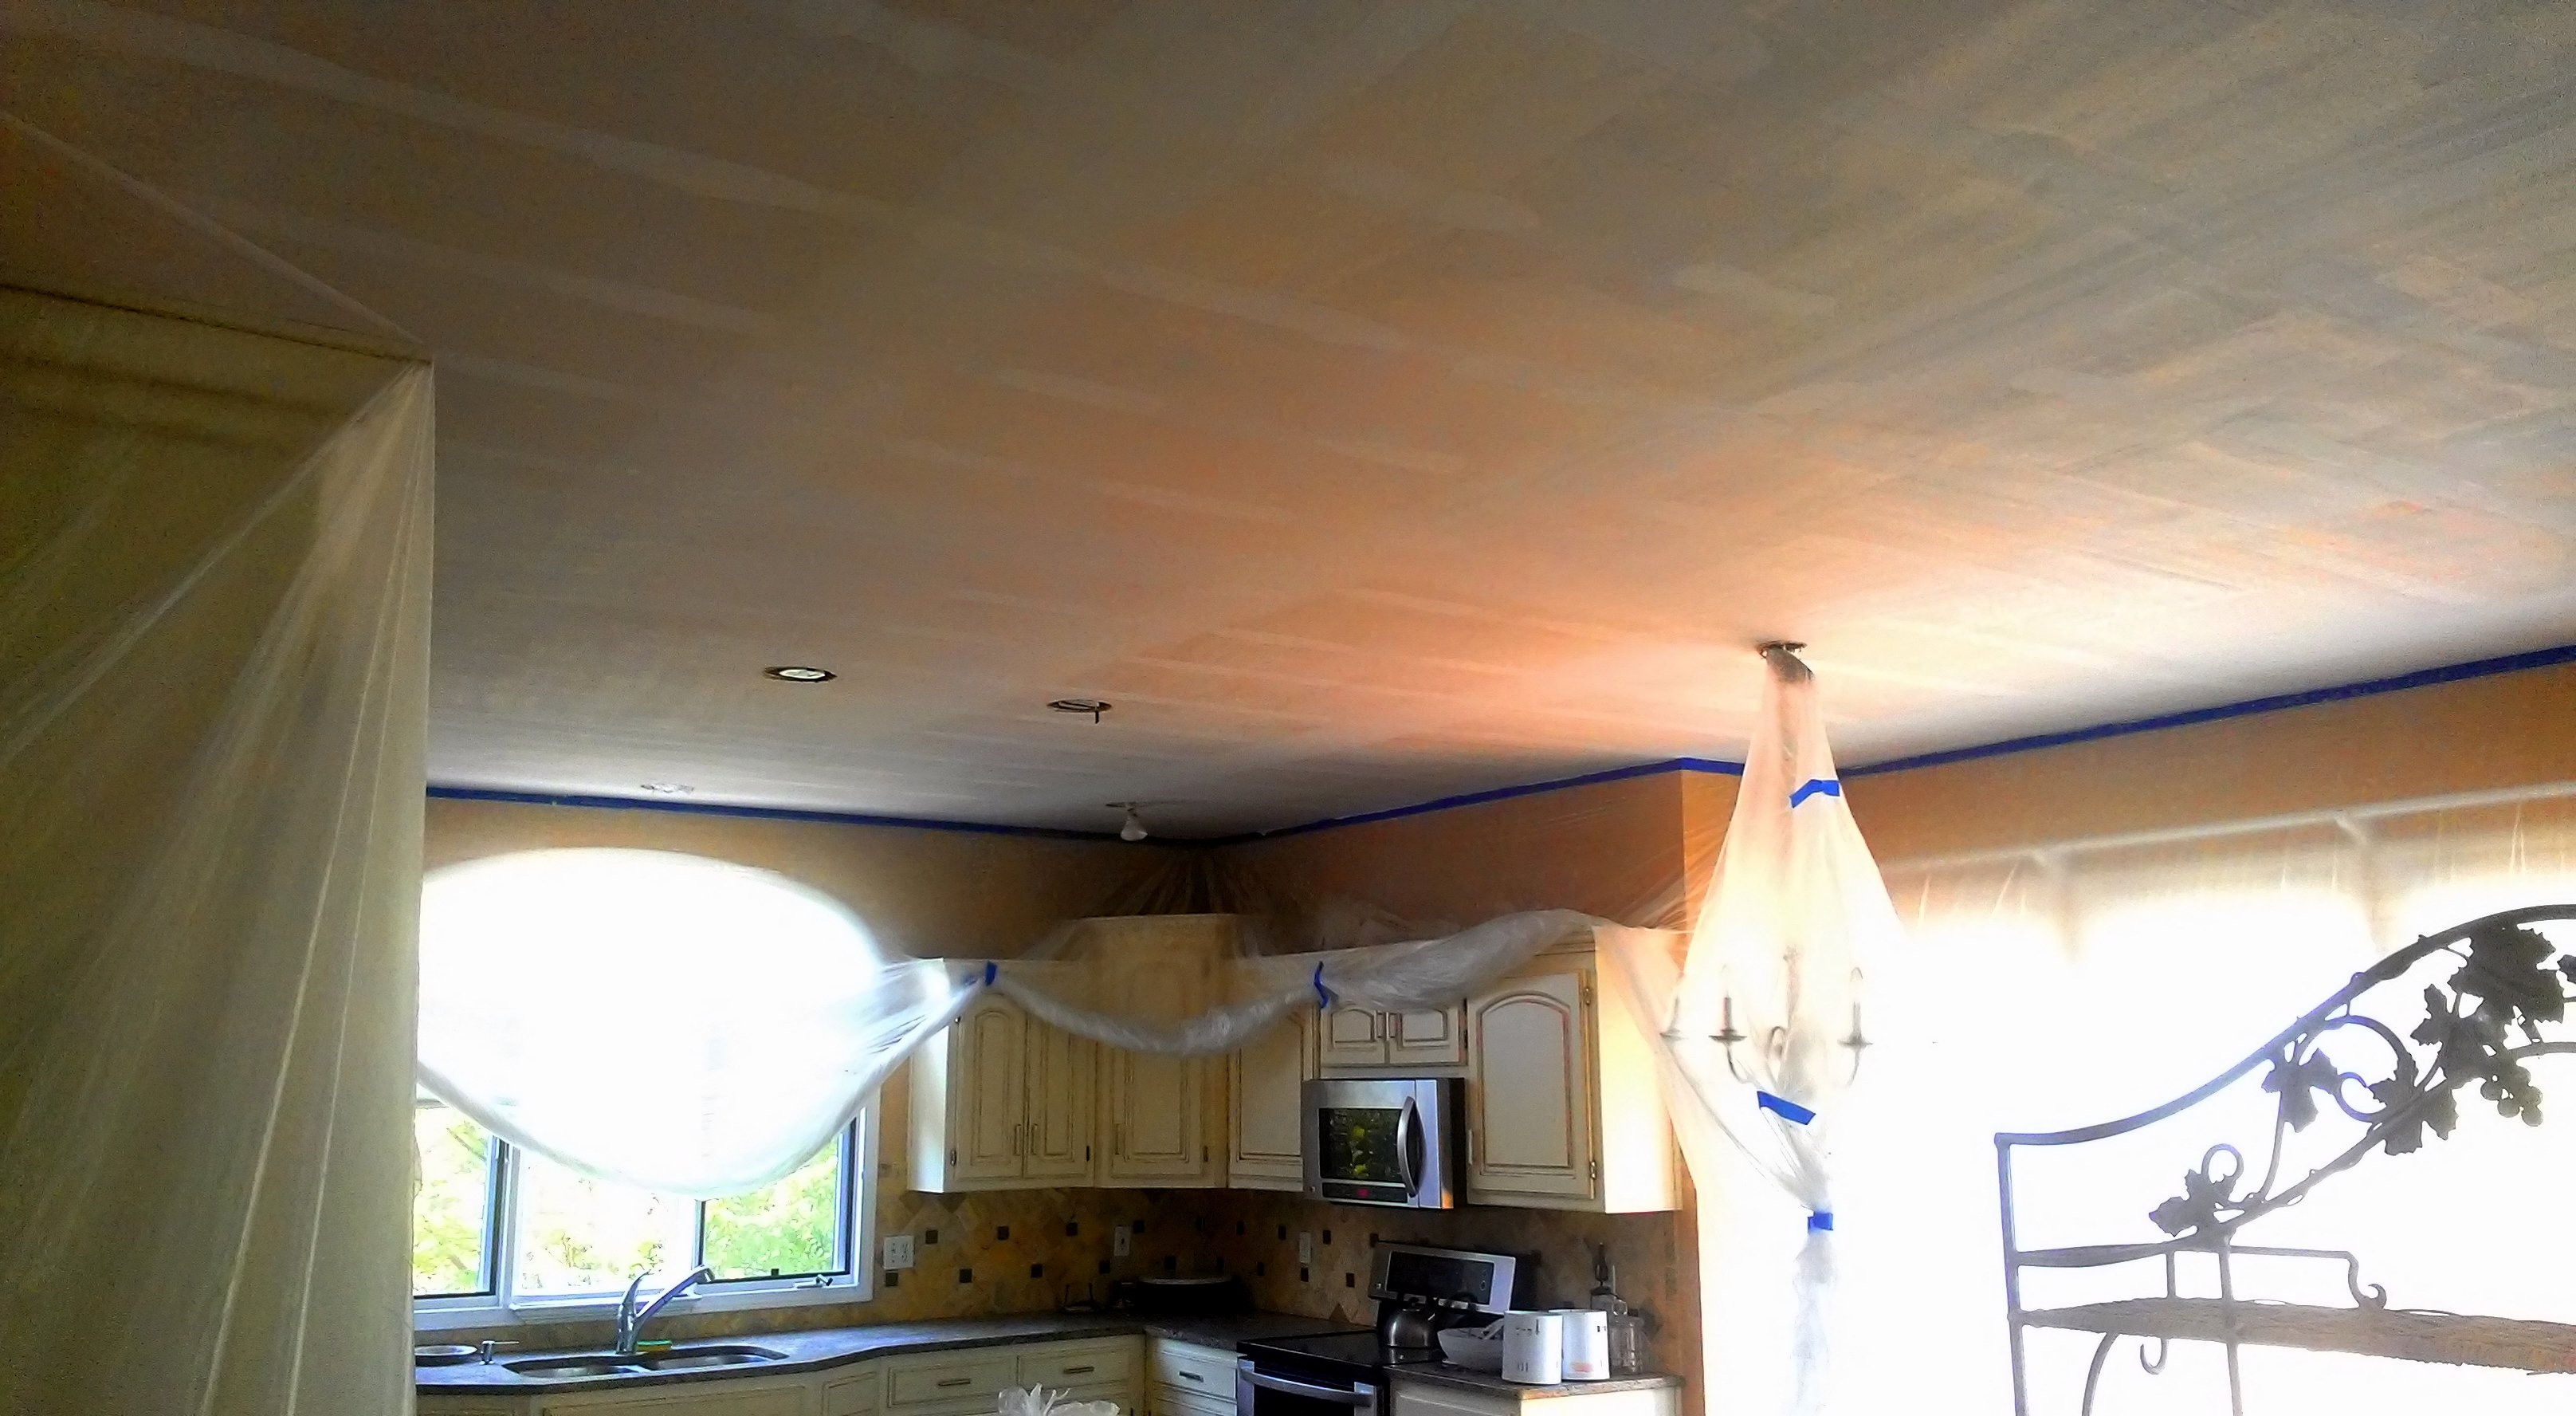 elegant removal remove popcorn painted ceiling with how home removing cost ceilings modern to of